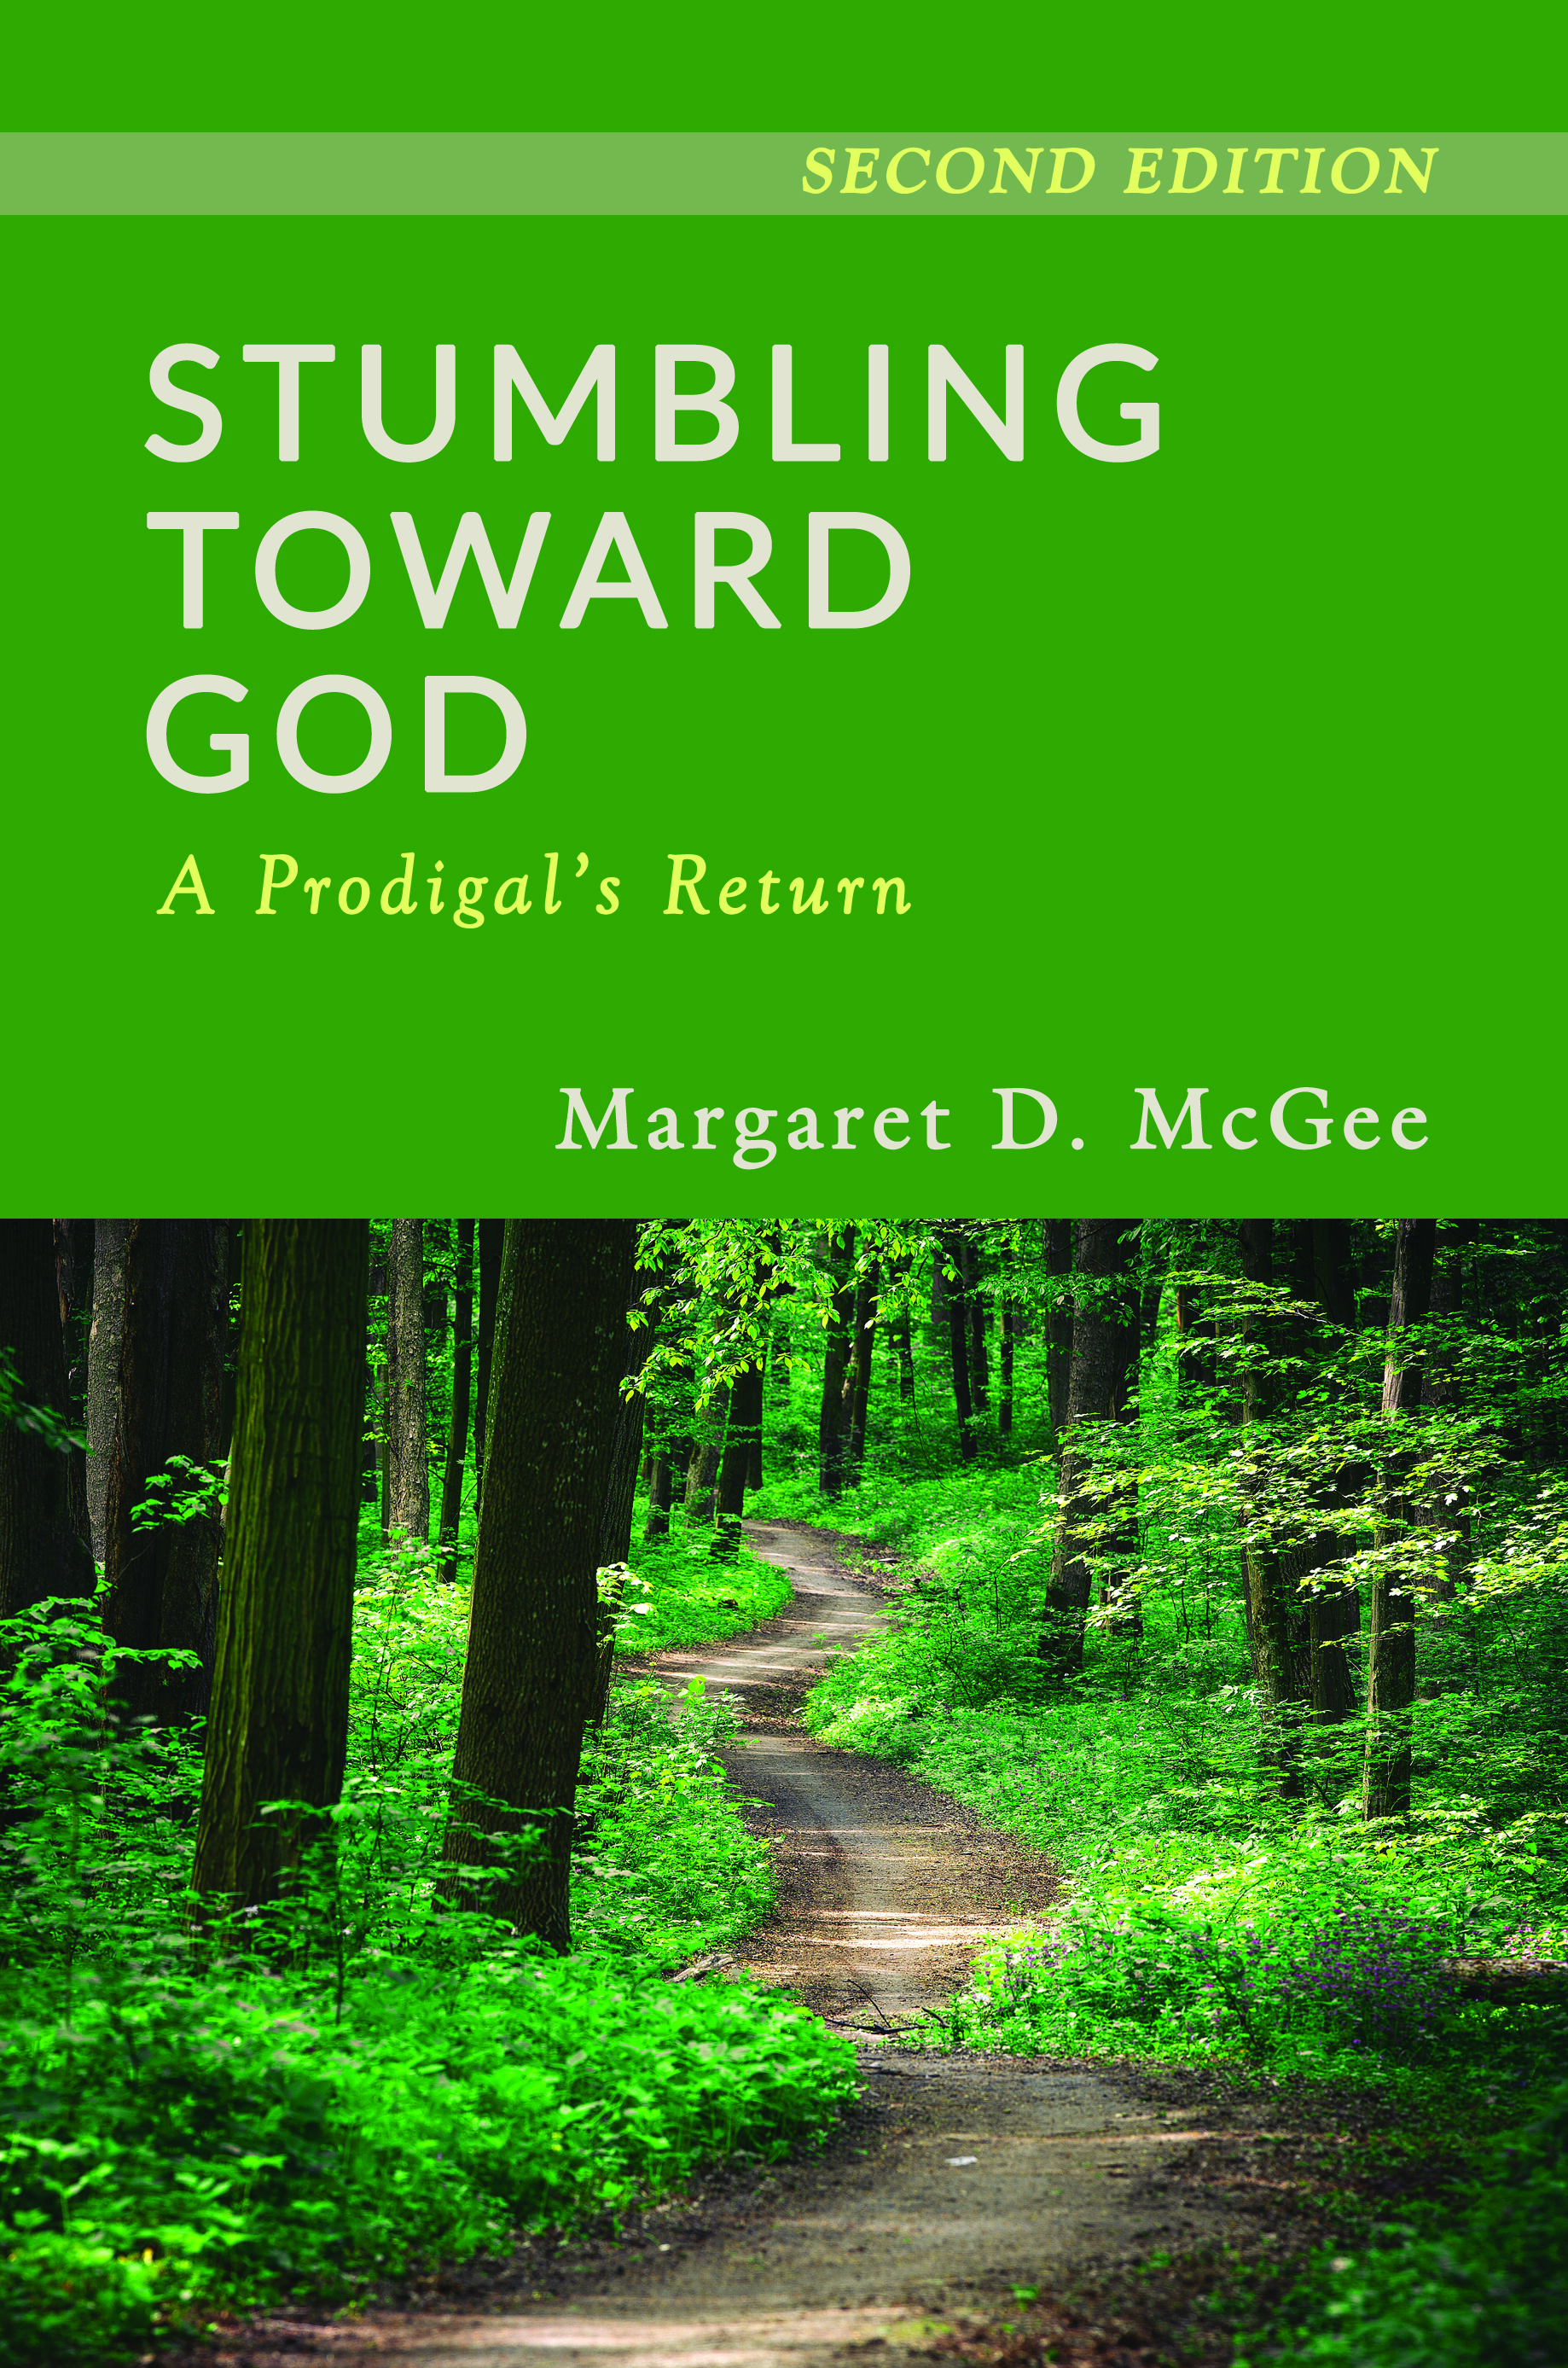 Stumbling Toward God book cover, showing a path leading into woods.